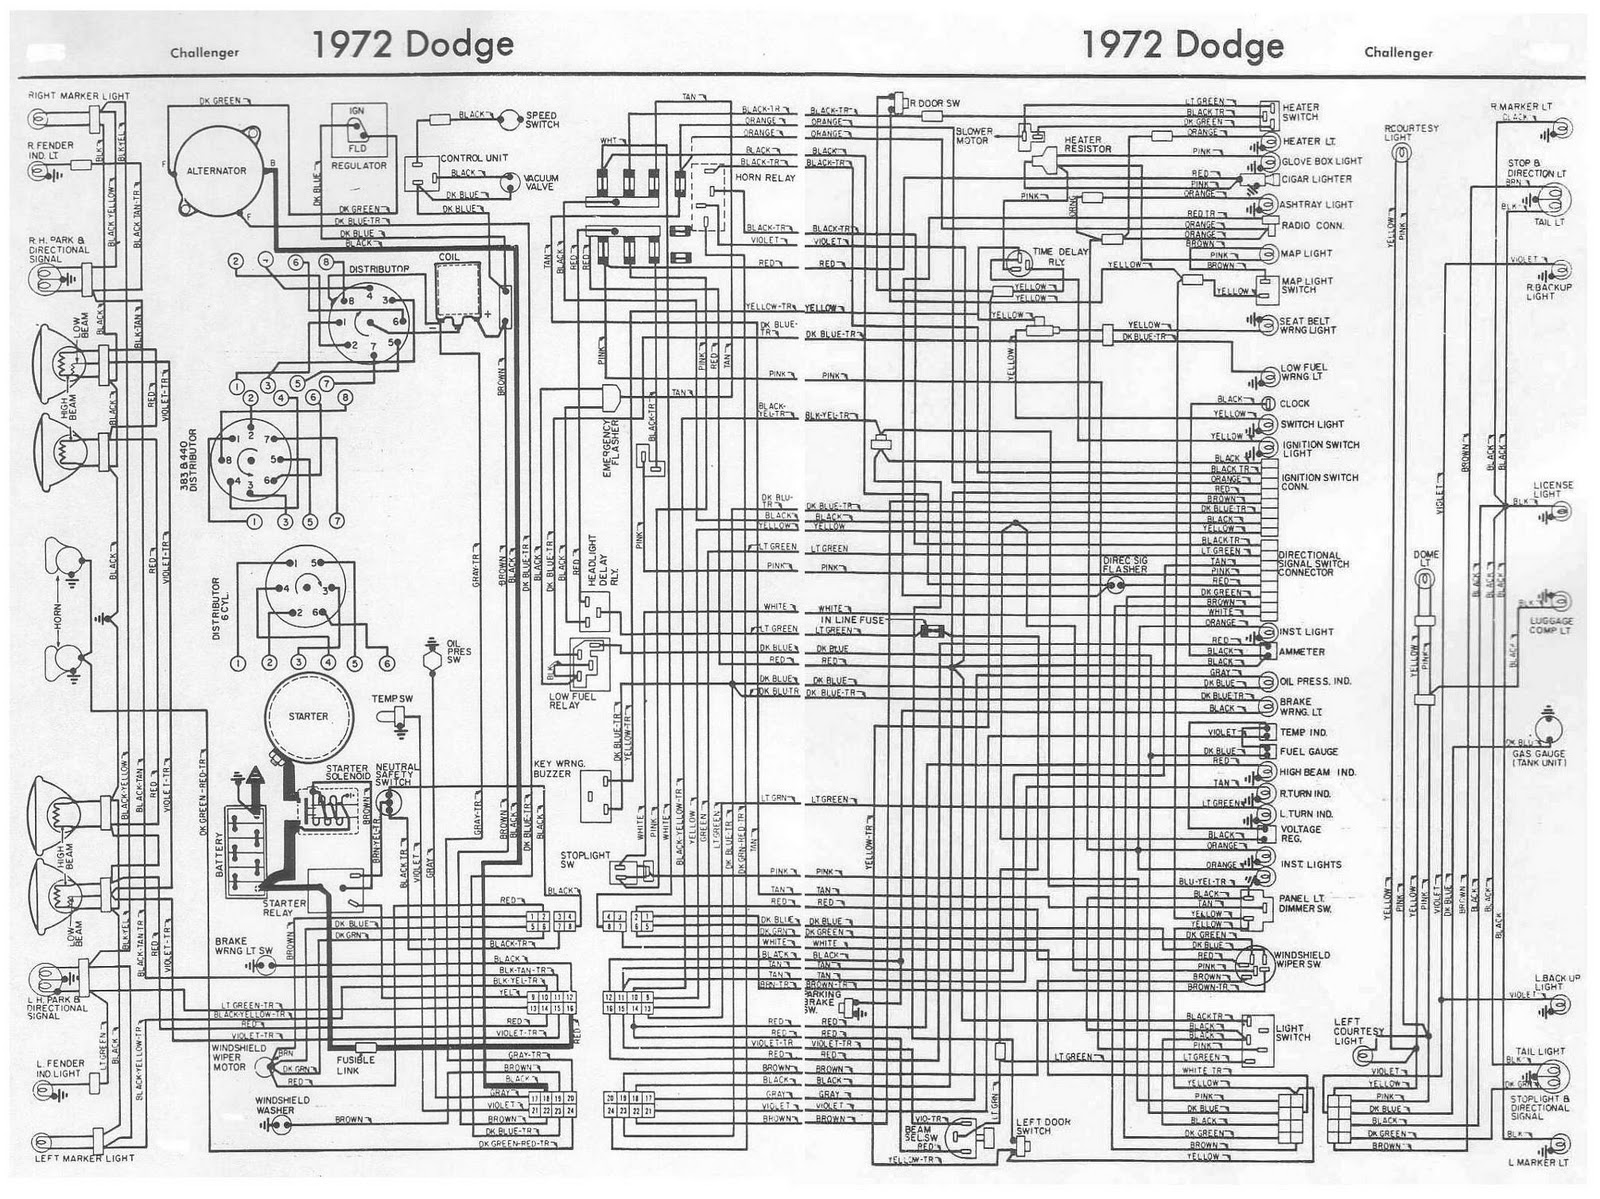 Dodge+Challenger+1972+Complete+Wiring+Diagram dodge challenger 1972 complete wiring diagram all about wiring 1972 dodge charger wiring diagram at n-0.co